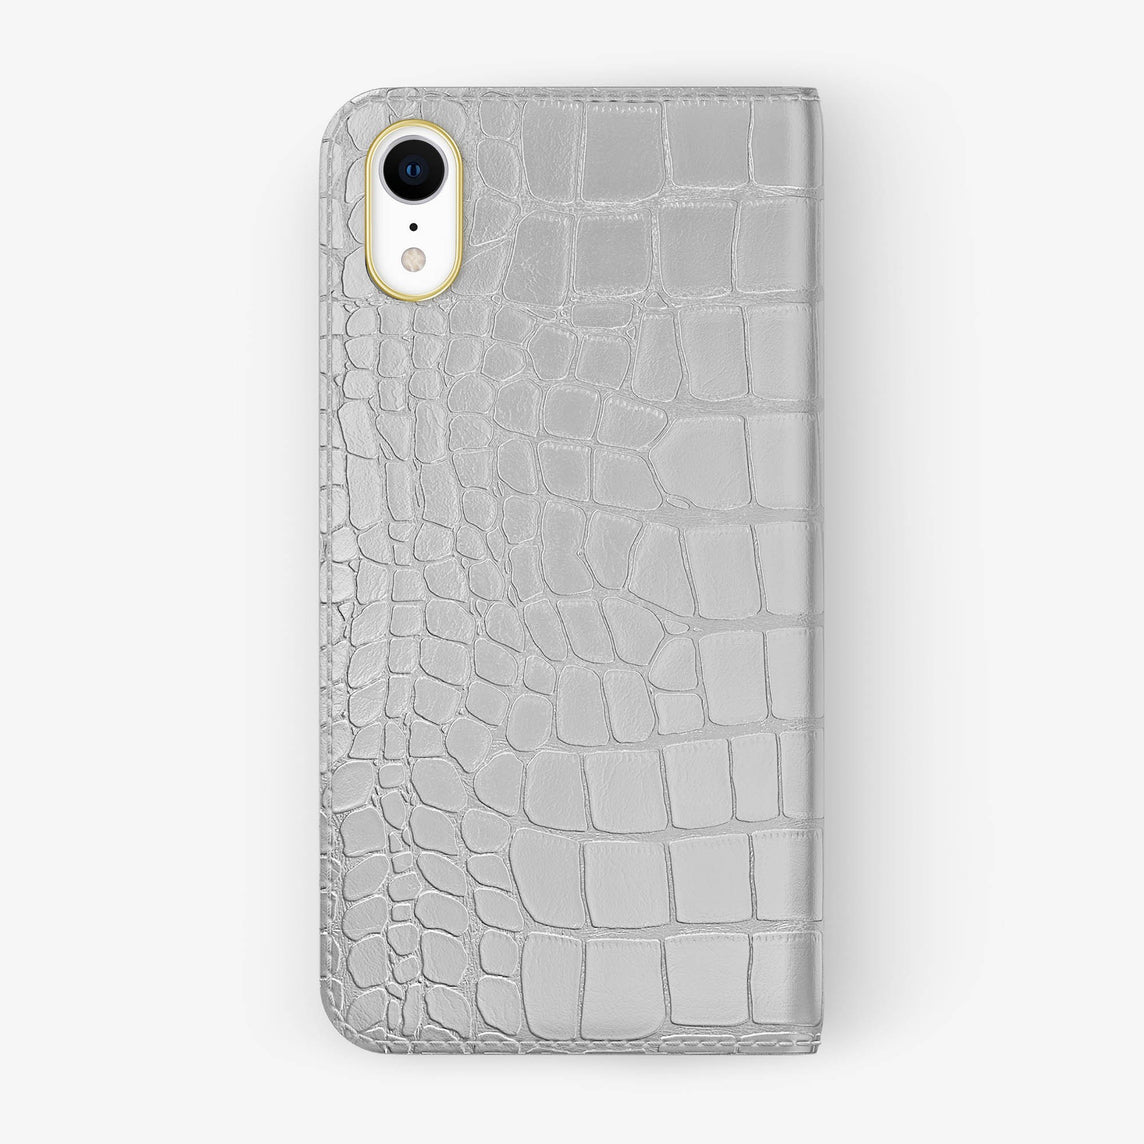 Alligator [iPhone Folio Case] [model:iphone-xr-case] [colour:white] [finishing:yellow-gold]